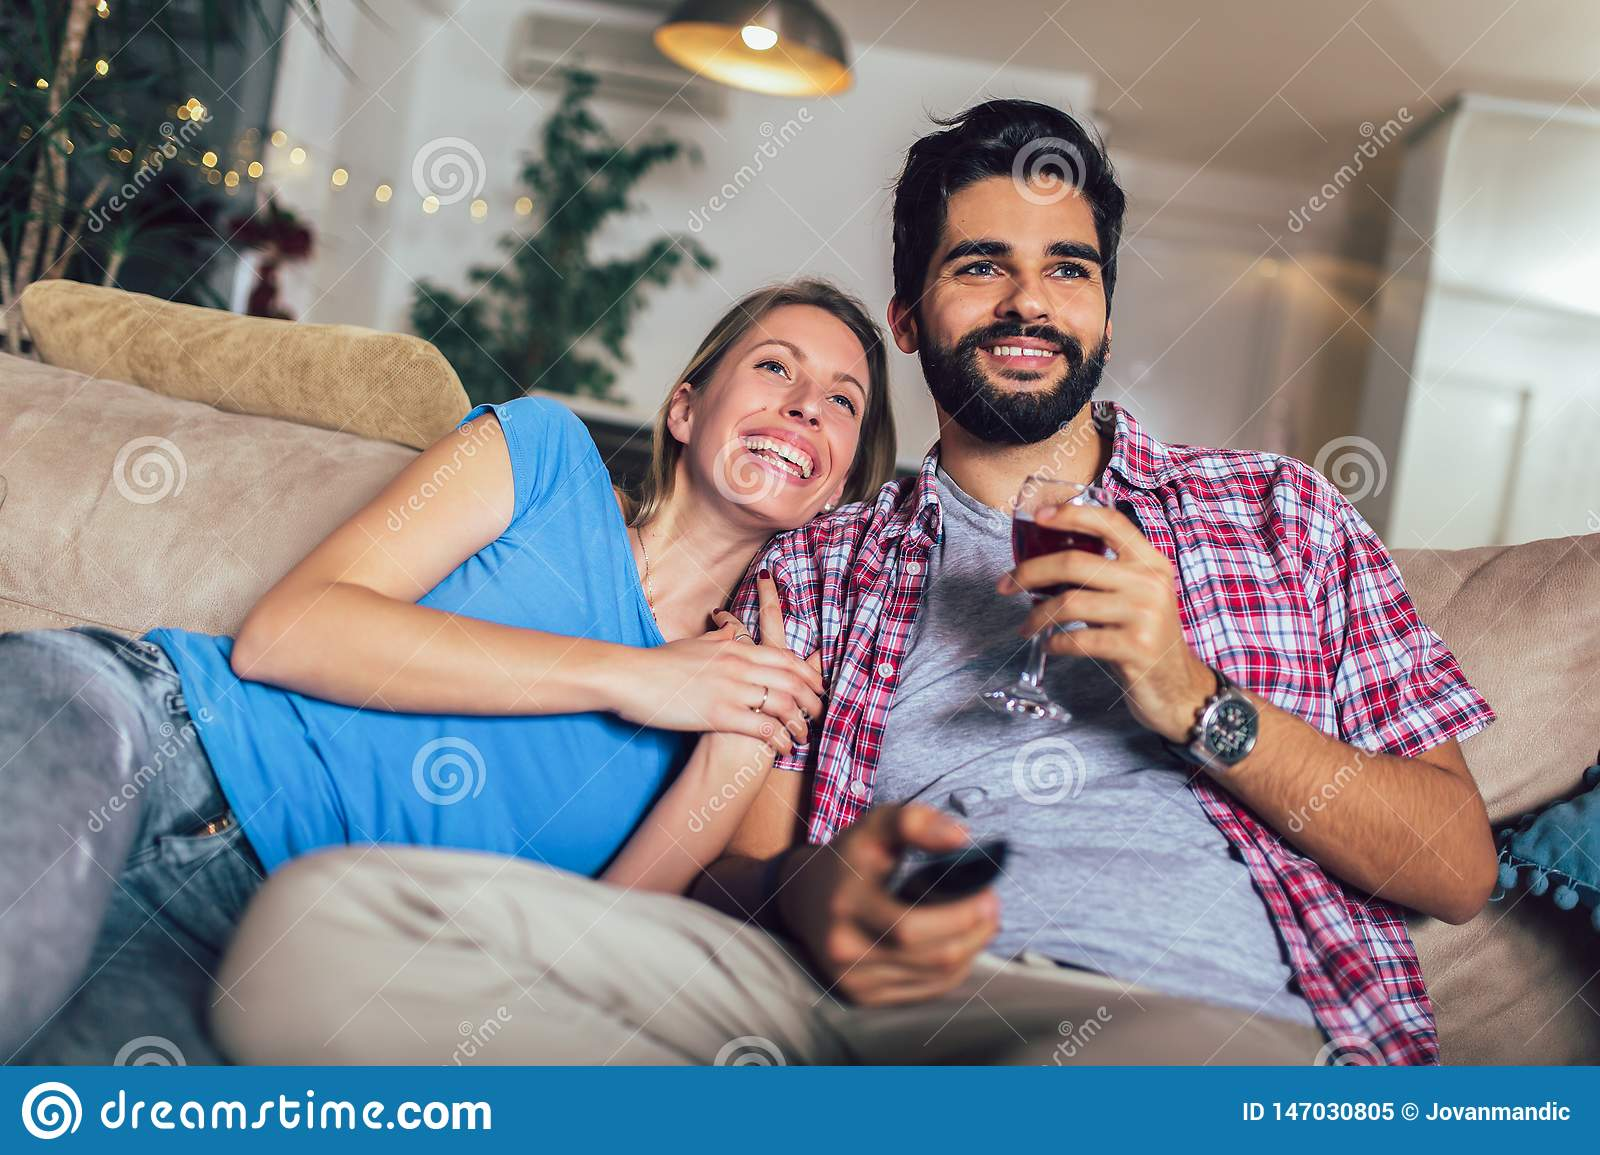 Young couple watching TV in living room